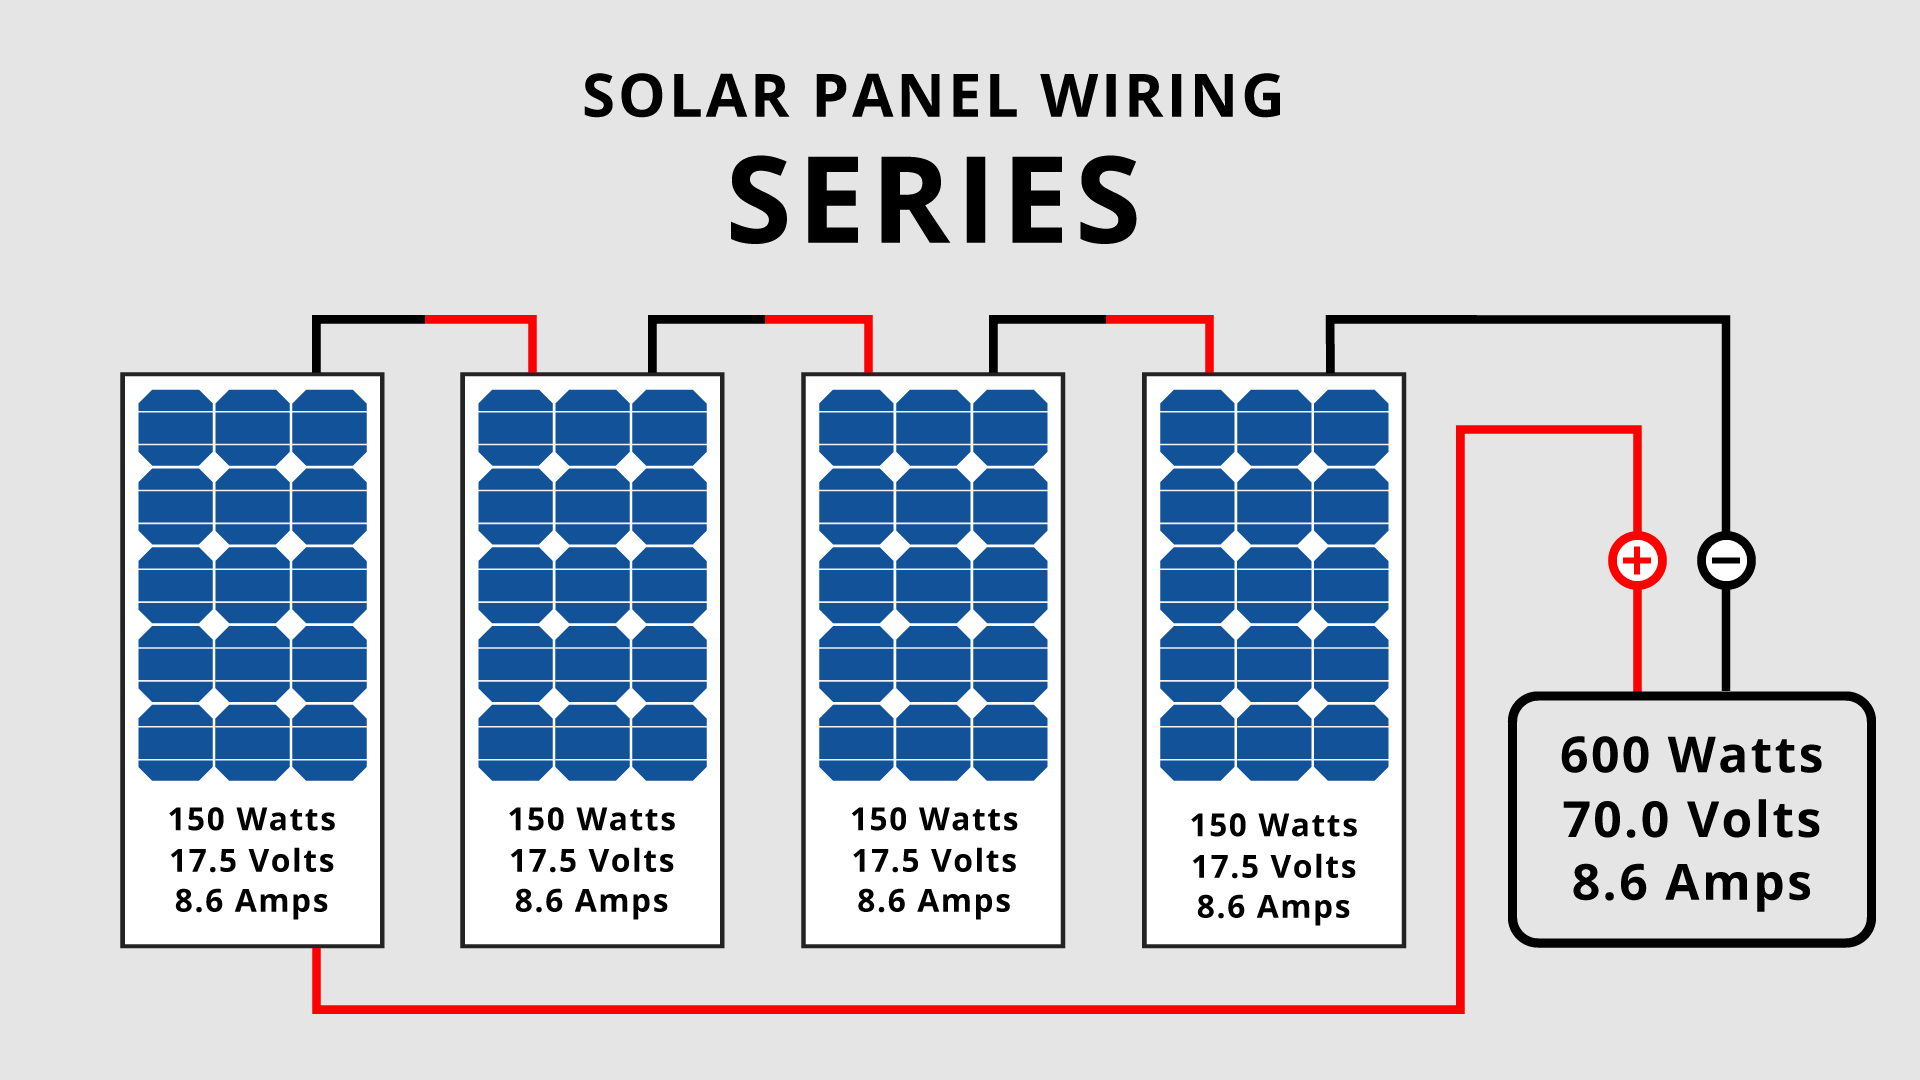 Campervan wiring diagram of solar panels wired in series